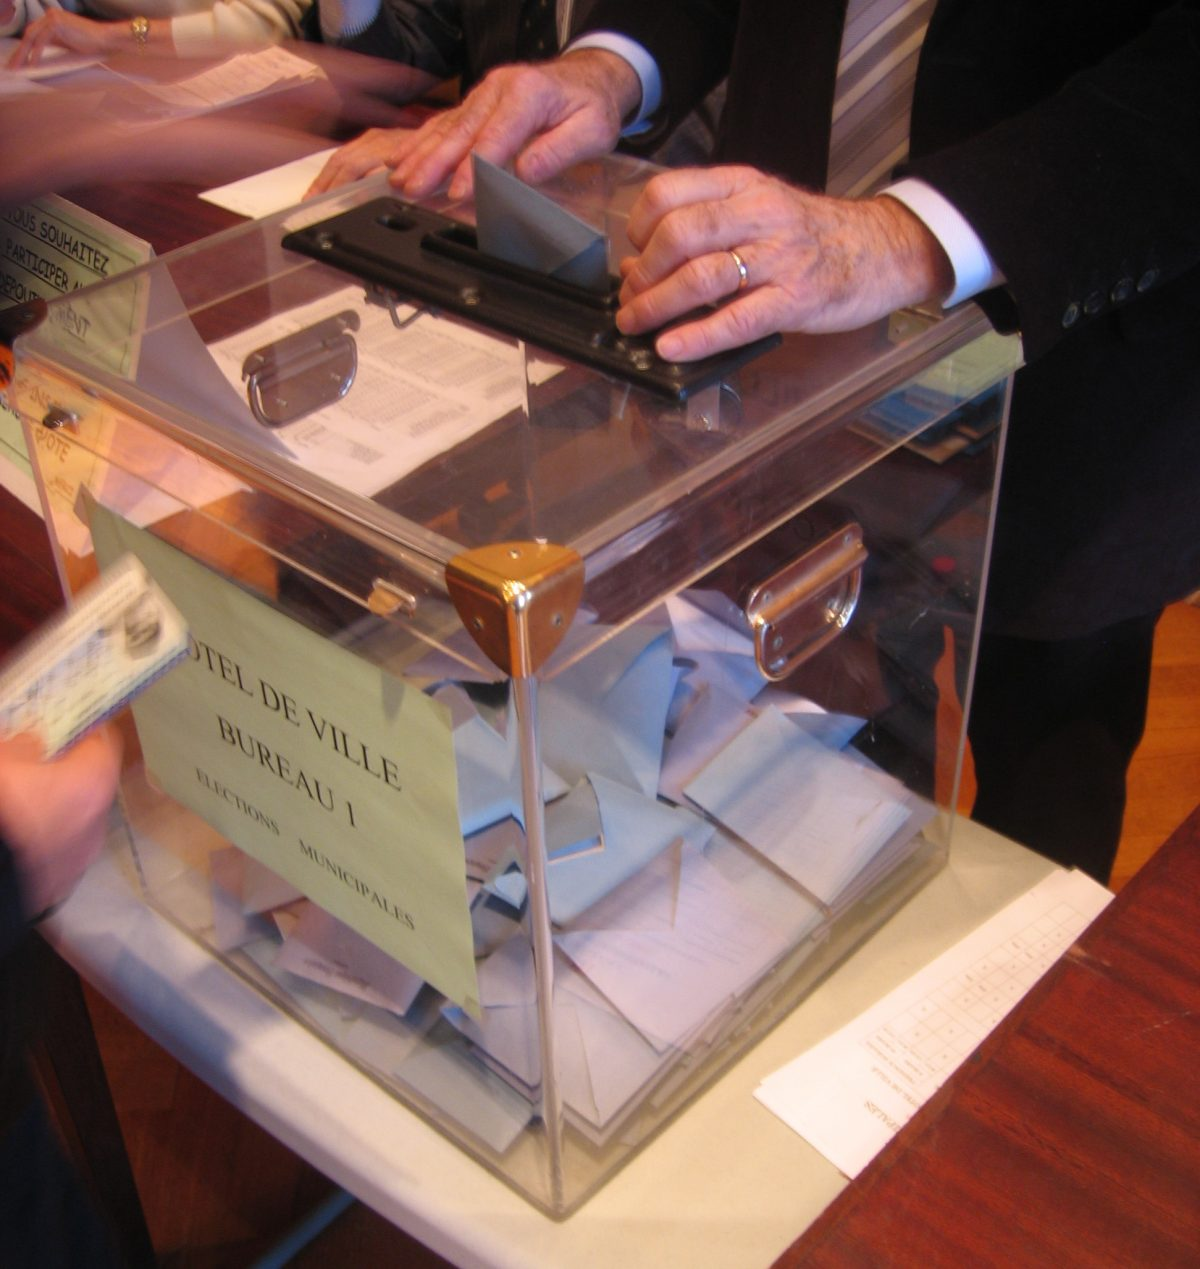 Municipal elections in France